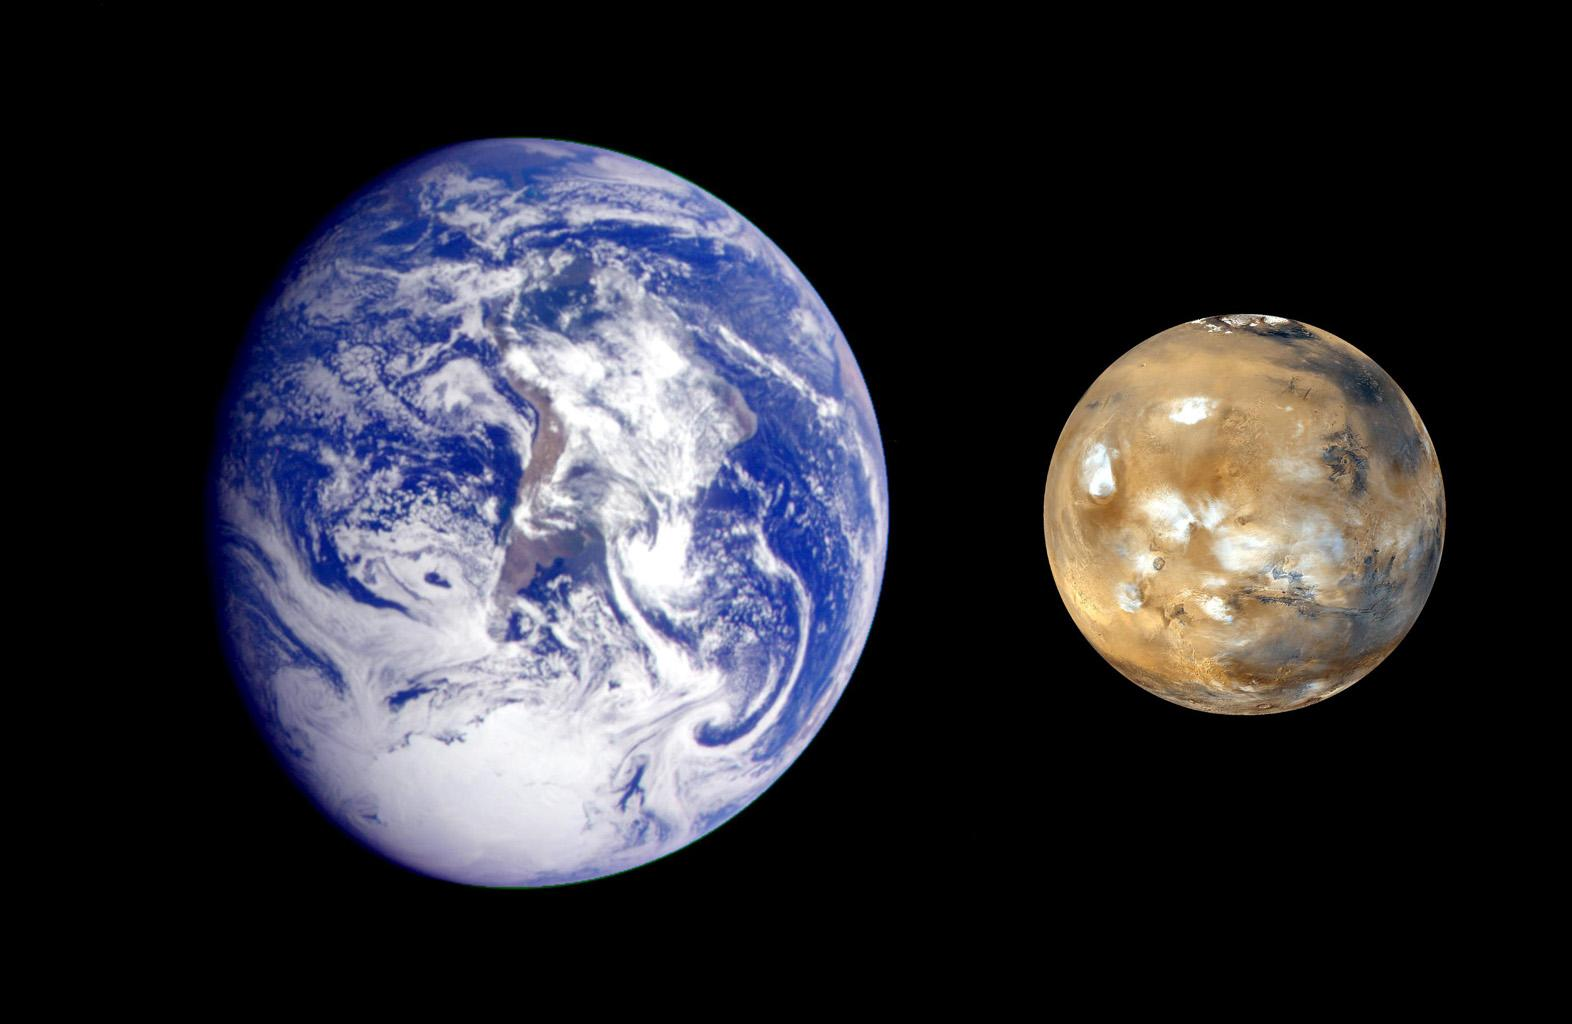 This composite image, from NASA's Galileo and Mars Global Survey orbiters, of Earth and Mars was created to allow viewers to gain a better understanding of the relative sizes of the two planets.